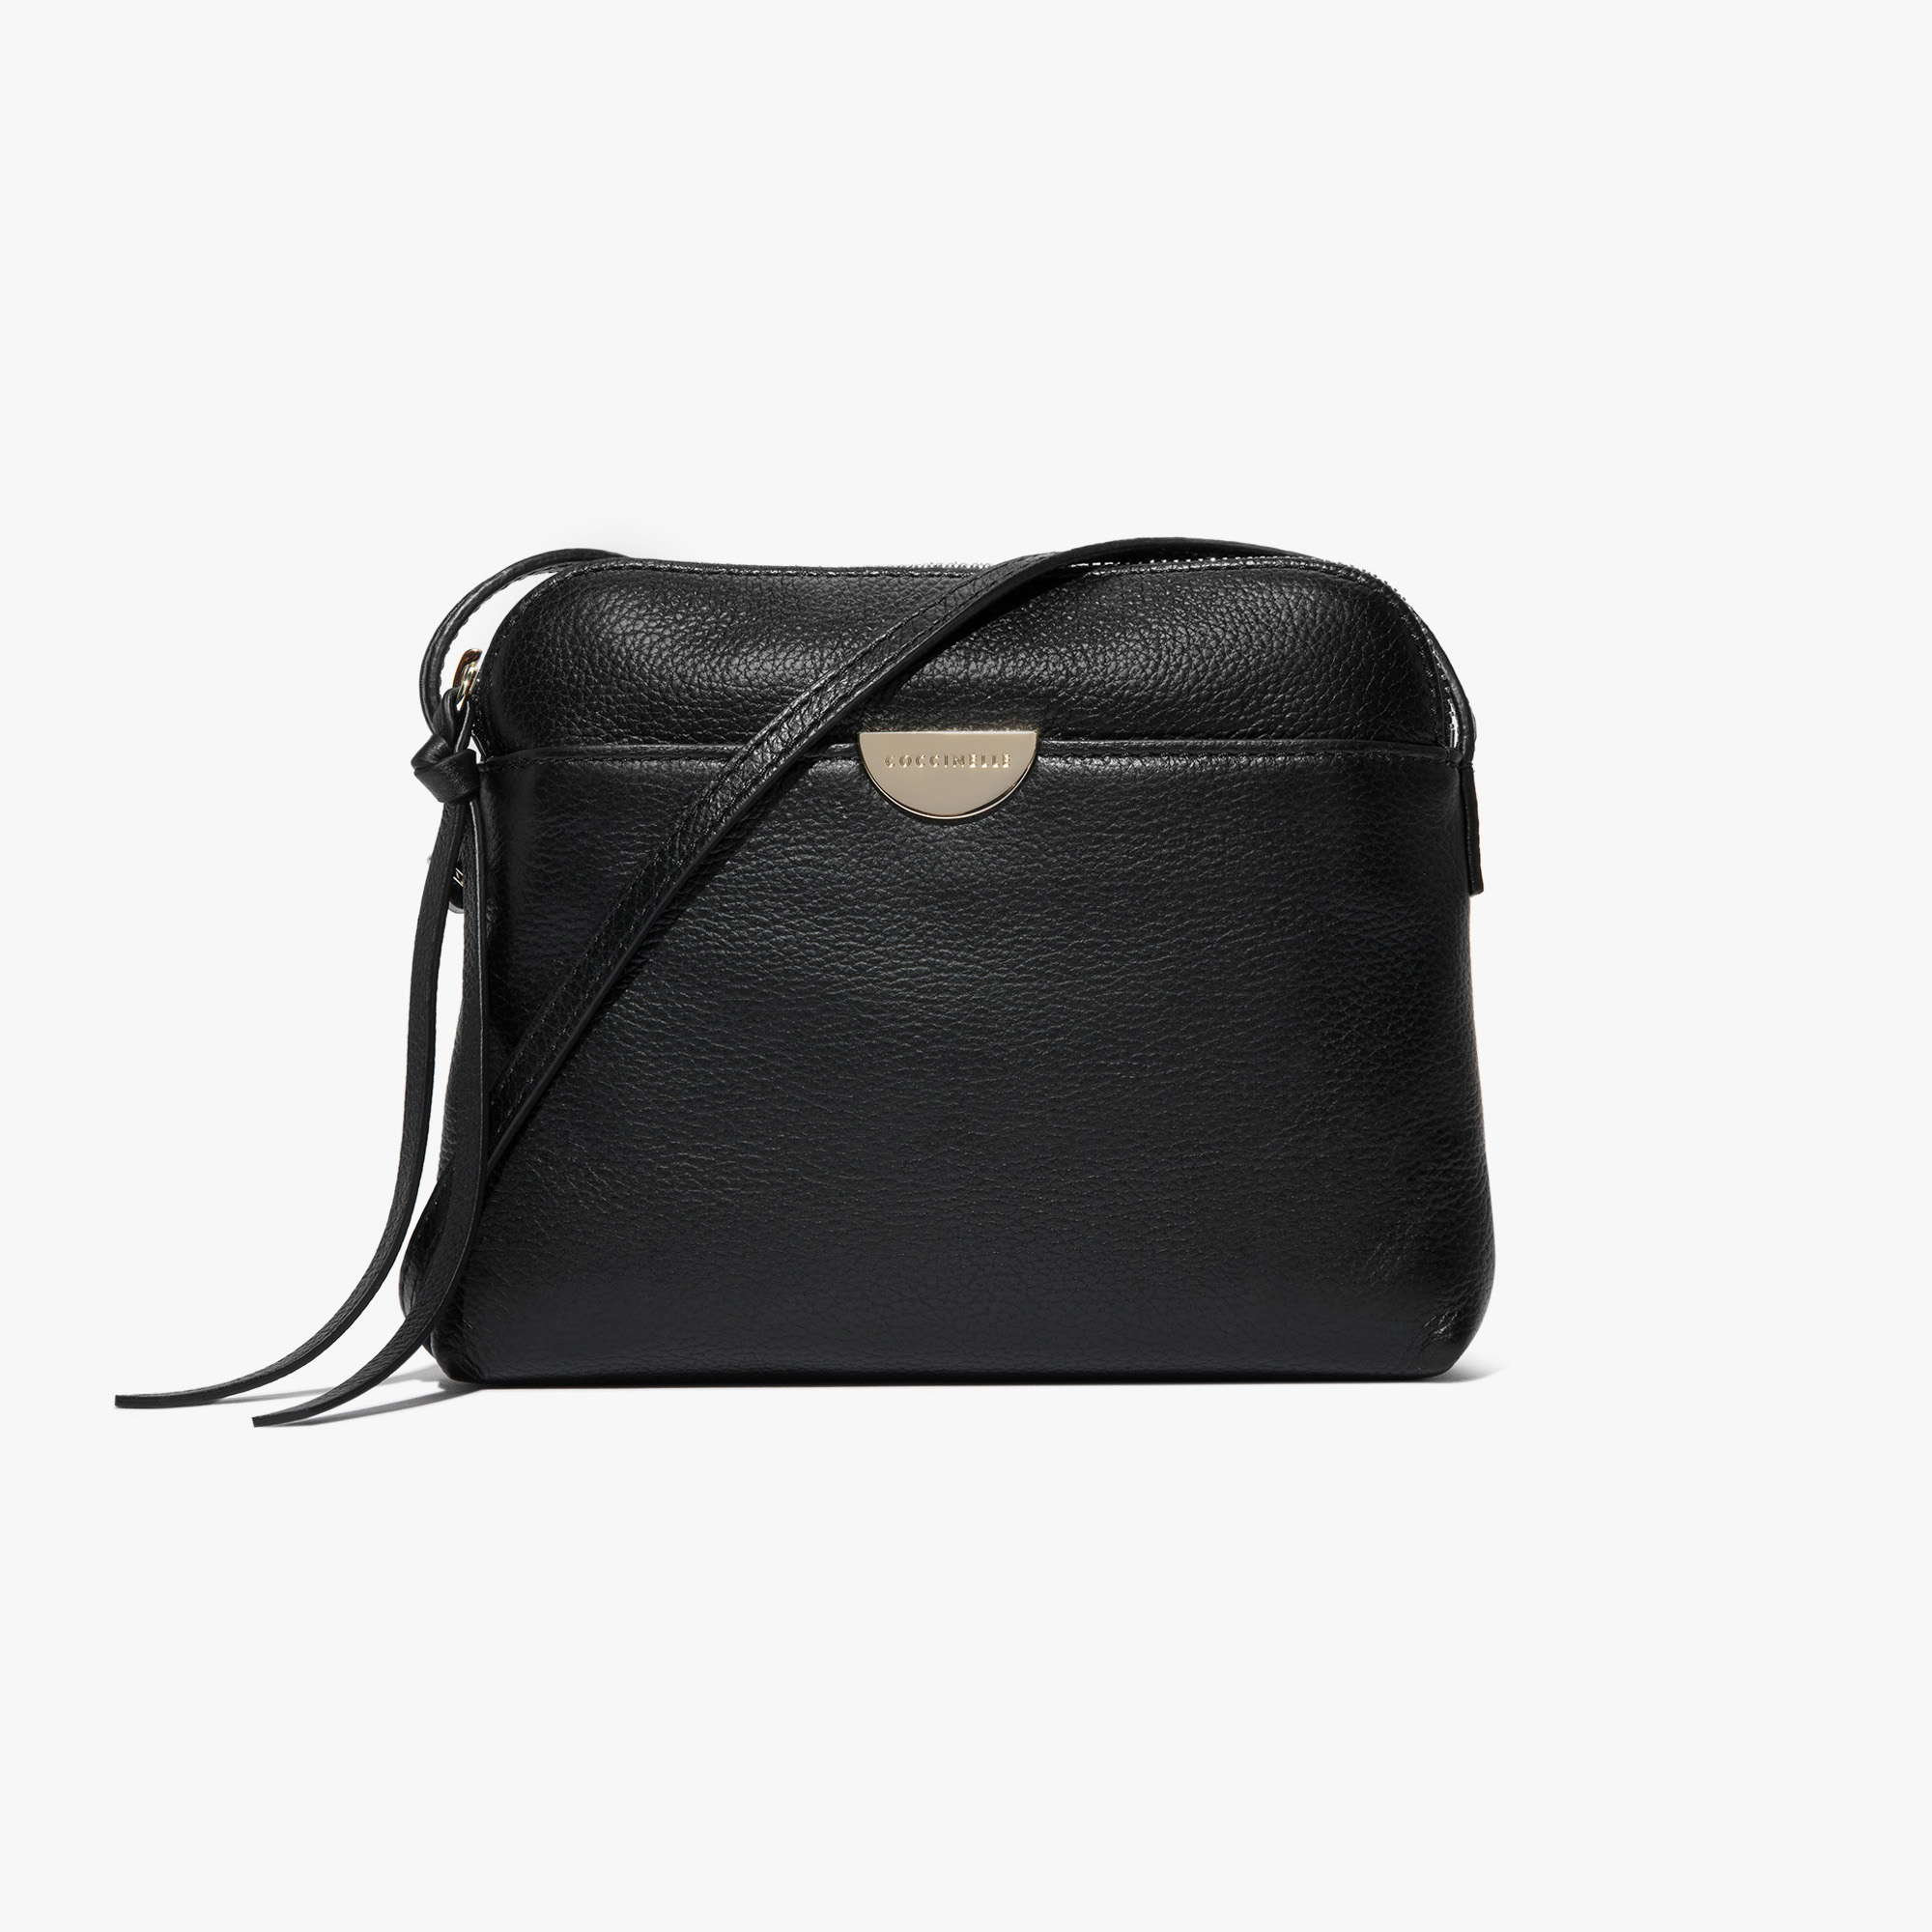 Leather minibag